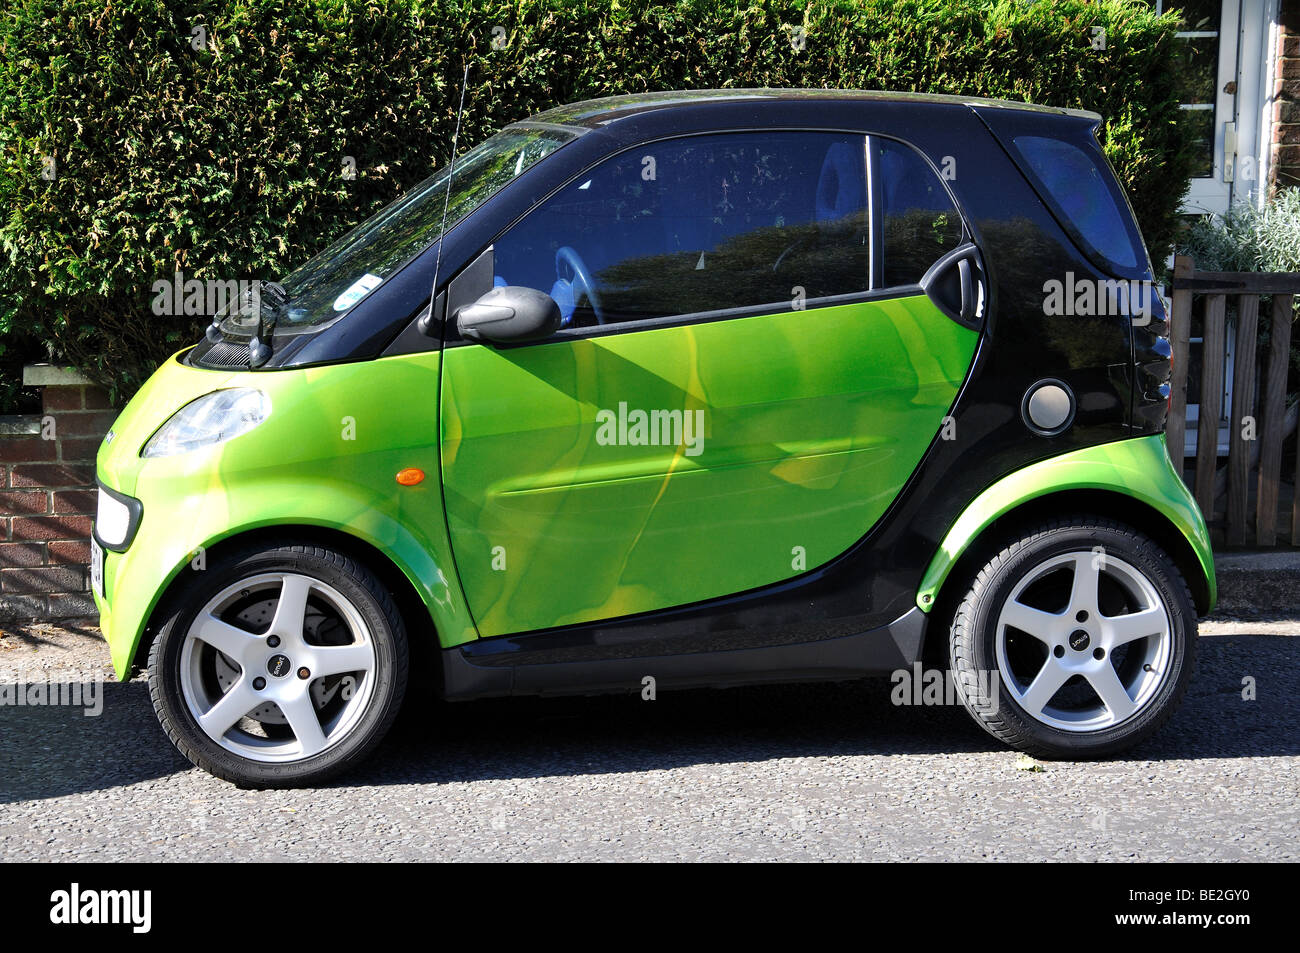 Green Smart Car parked in street, Whitchurch, Hampshire, England, United  Kingdom -